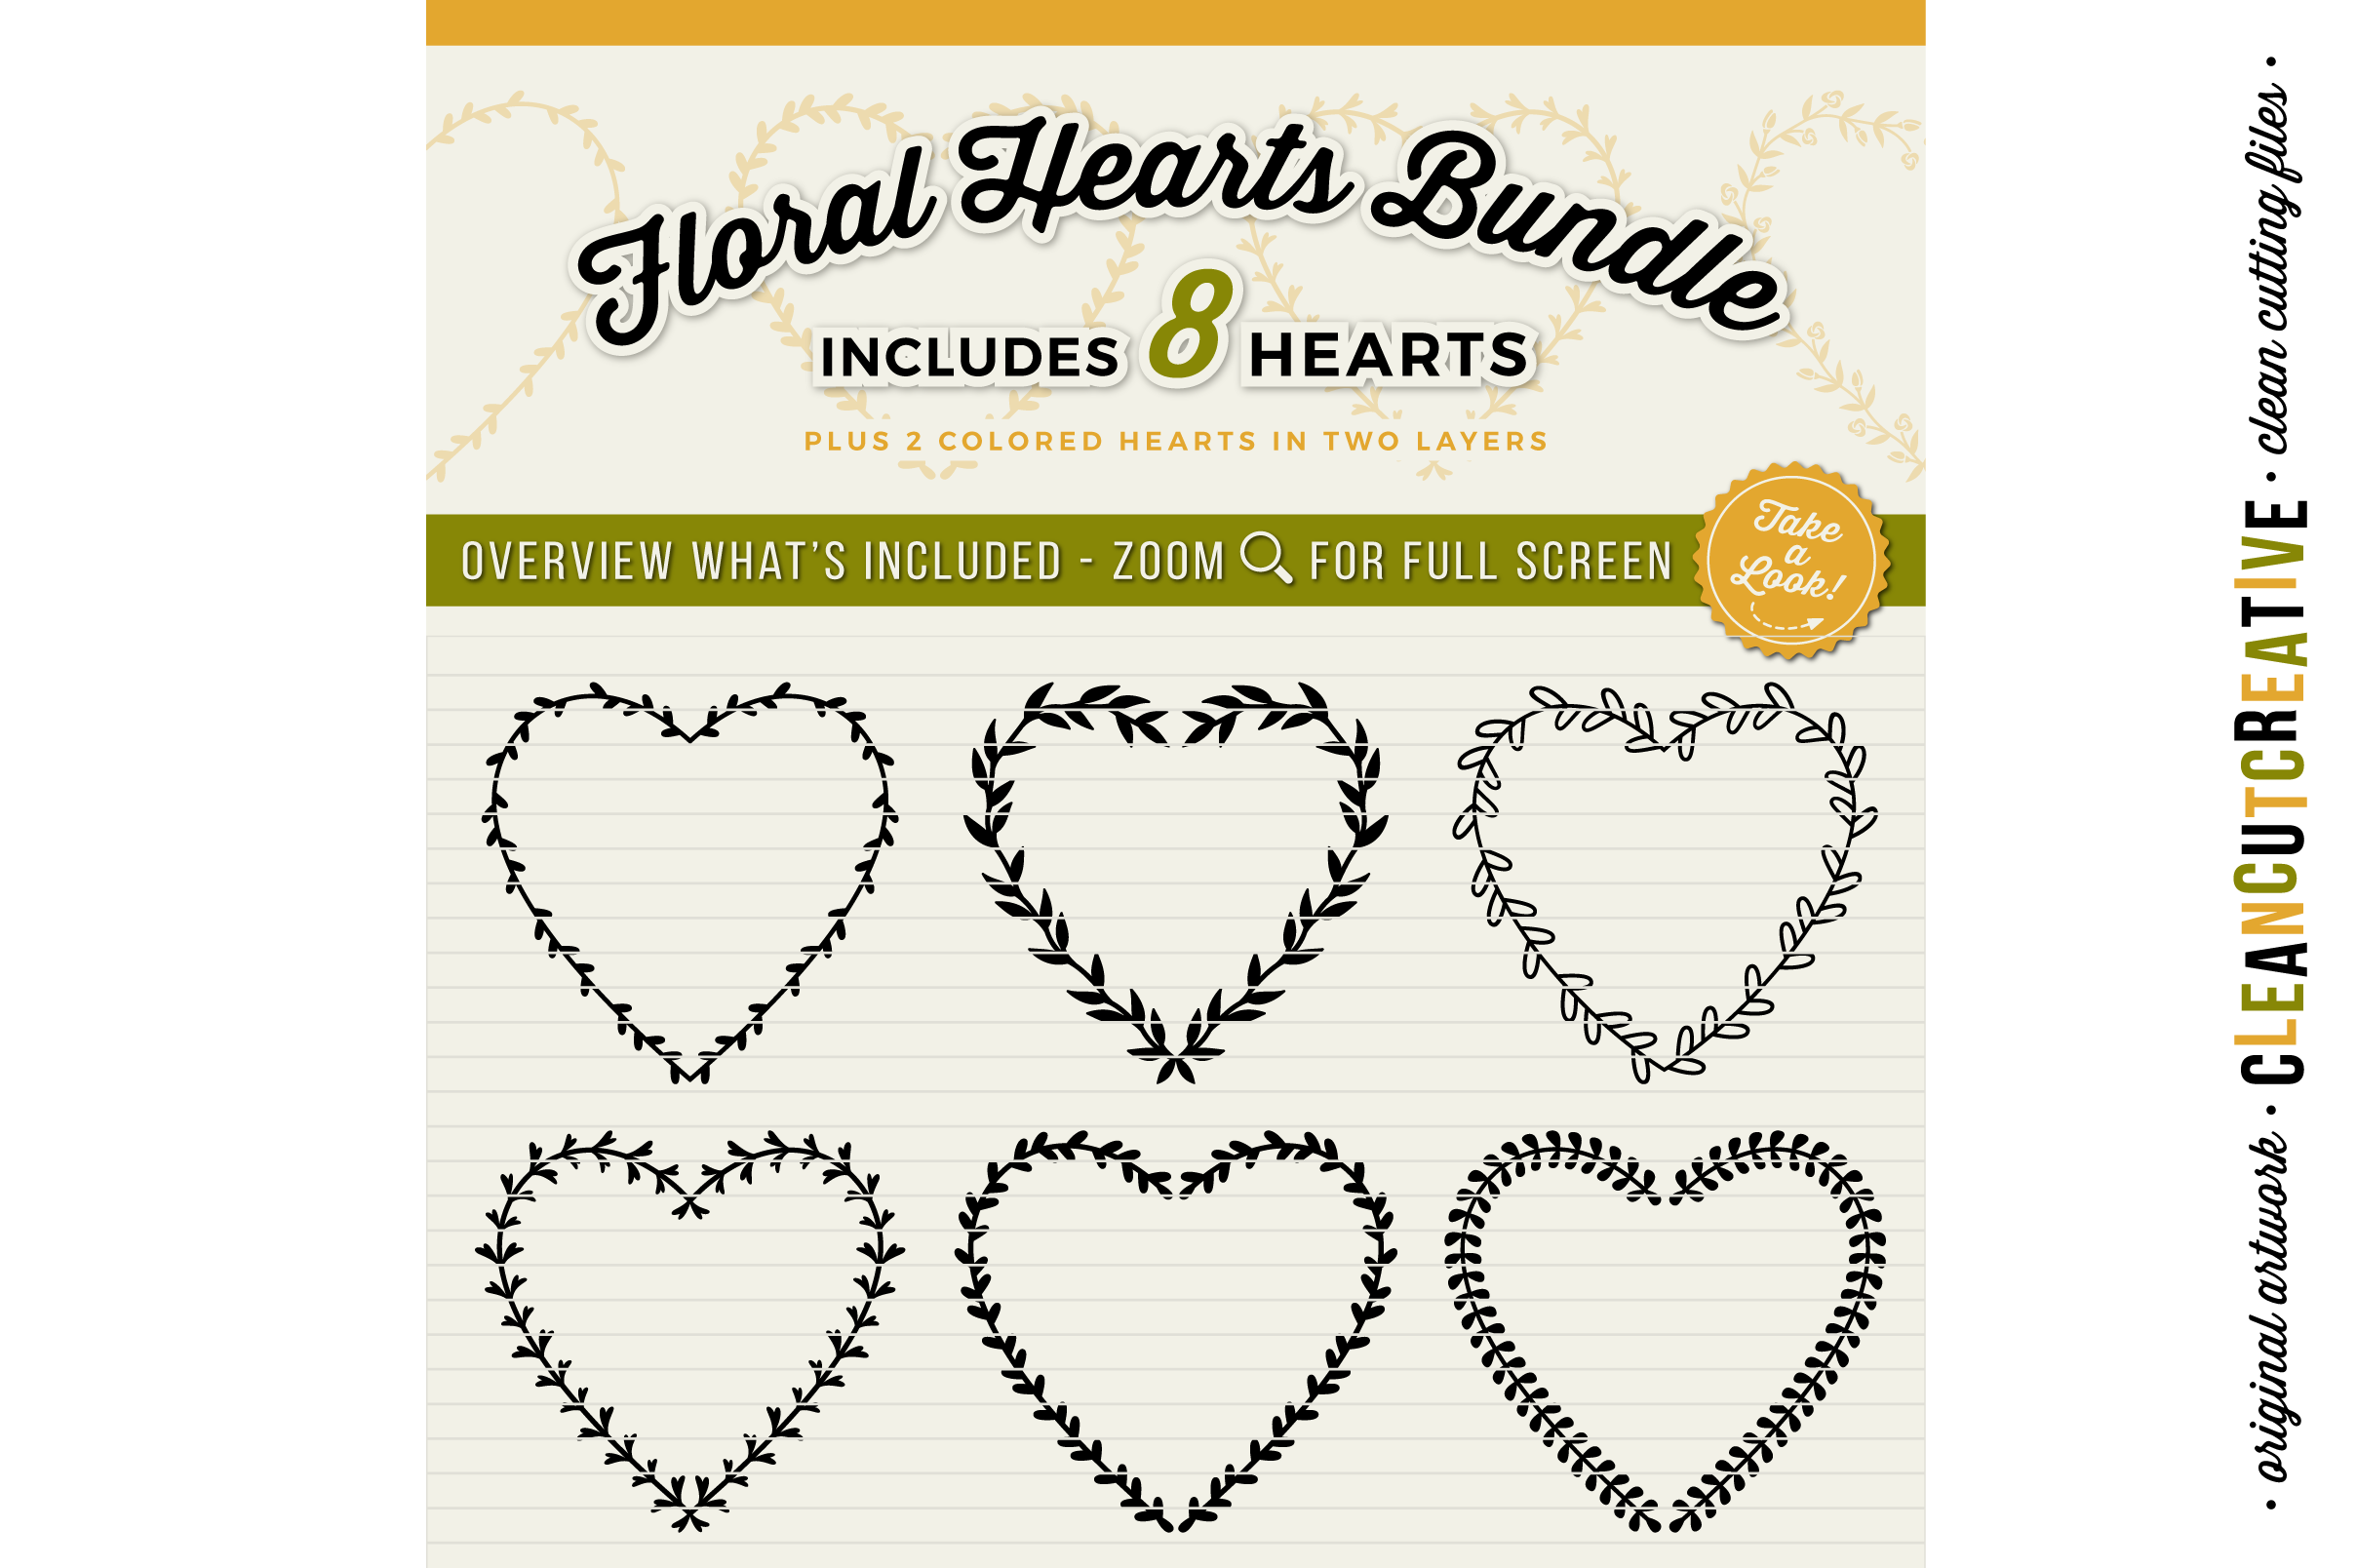 8 svg FLORAL HEARTS floral leaf heart wreath frames - SVG DXF EPS PNG - for Cricut and Silhouette Cameo - clean cutting digital files example image 2